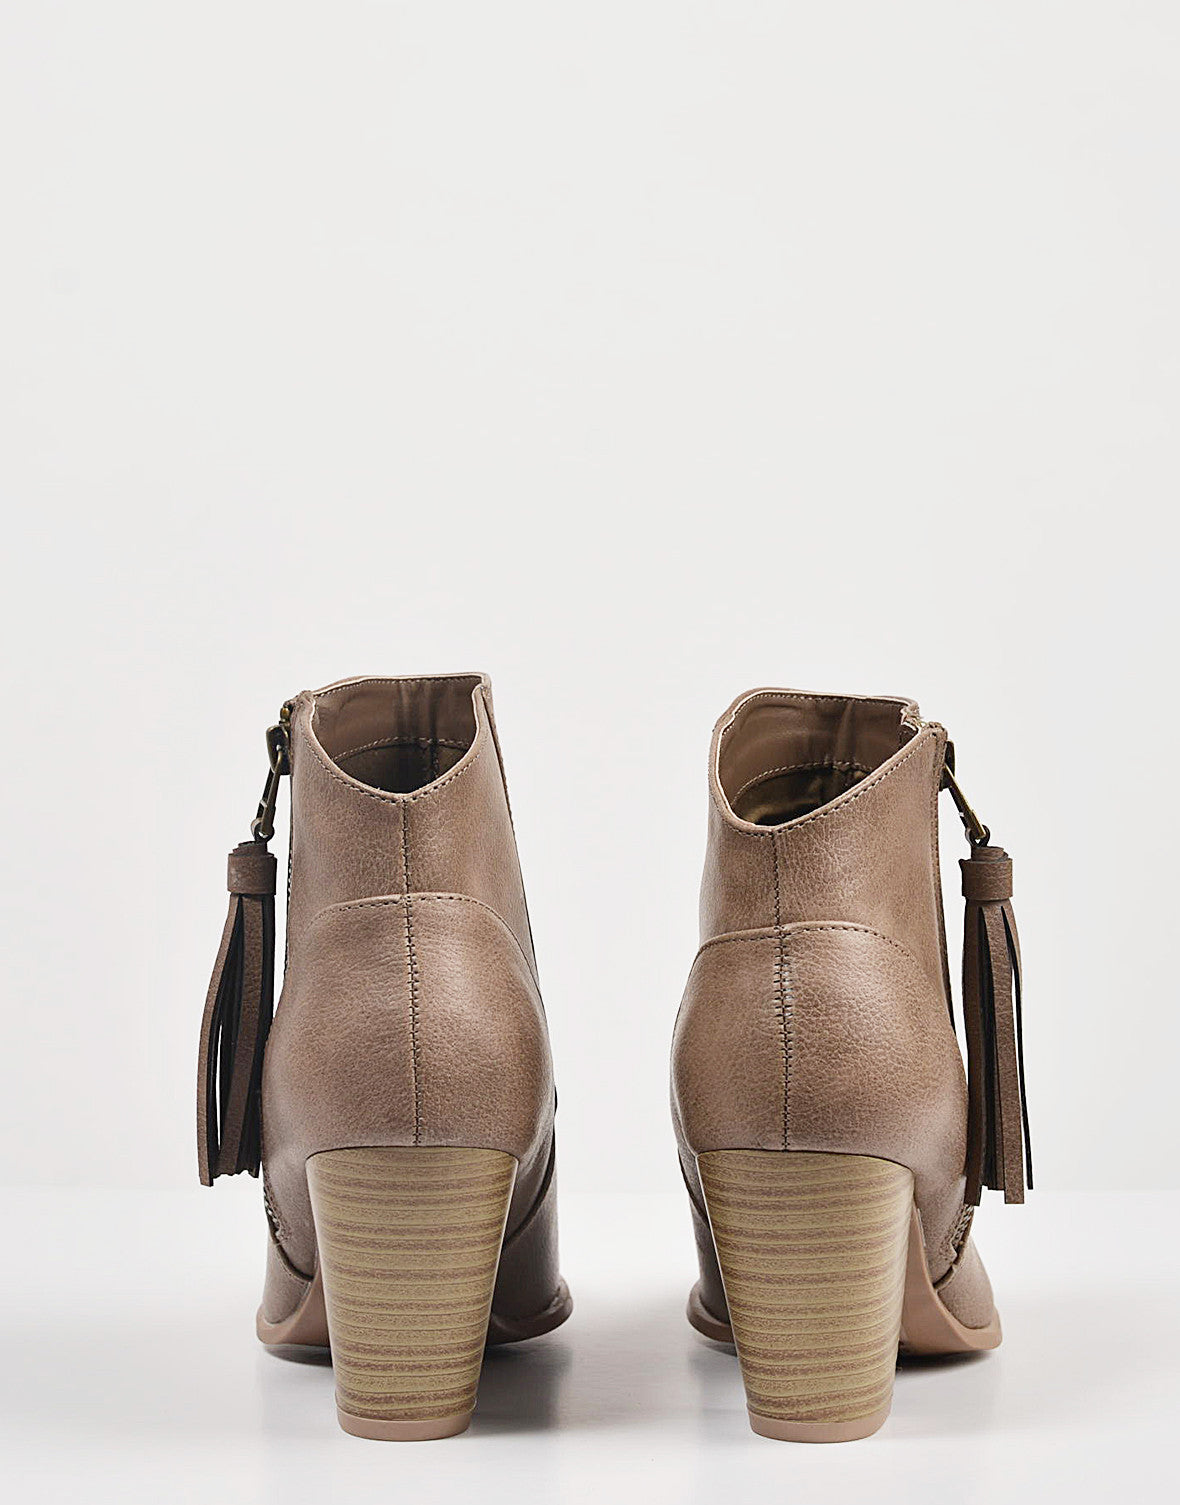 Back View of Tassel Zippered Ankle Booties